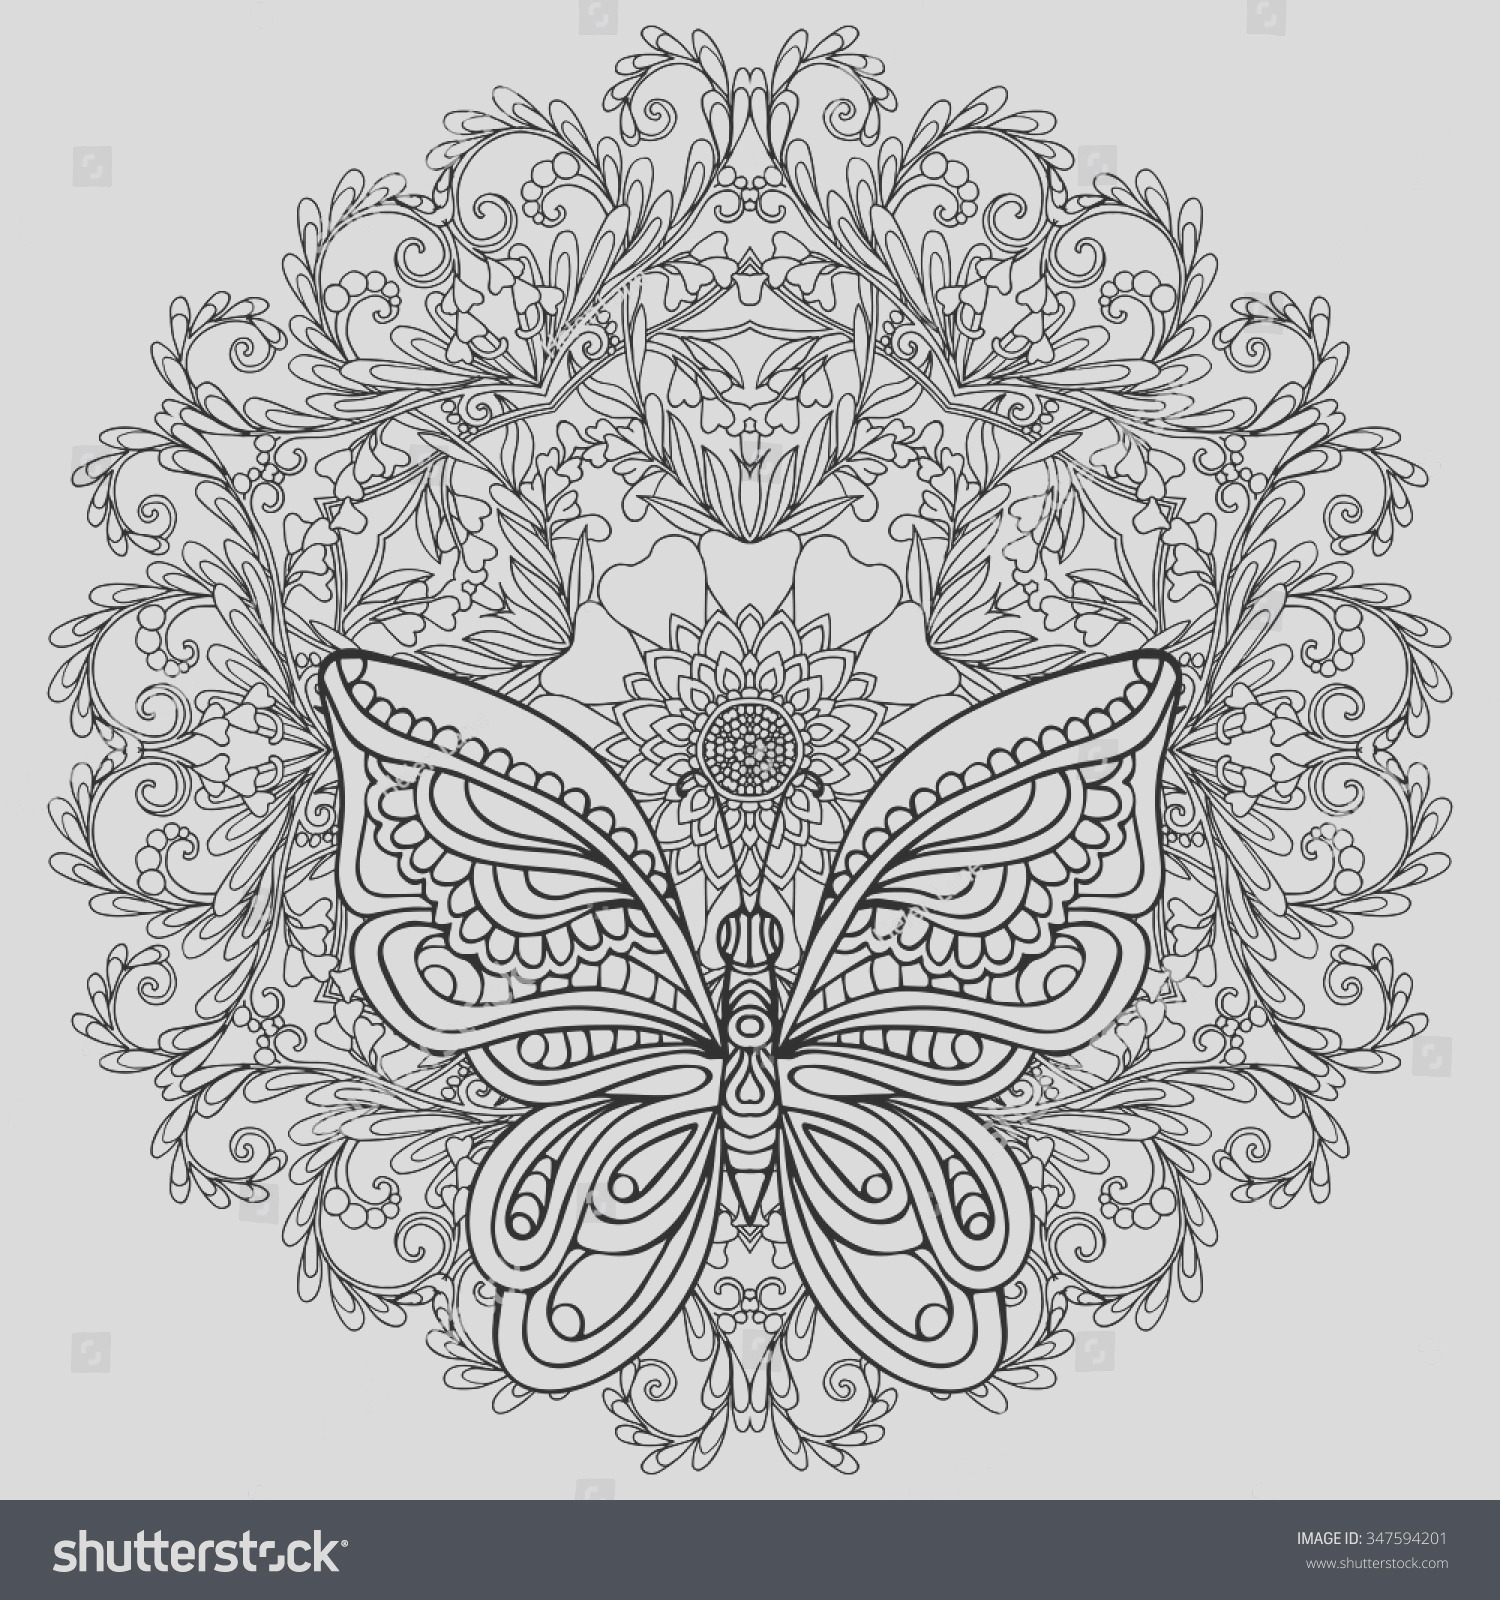 stock vector butterfly and floral mandala coloring book for adult and older children coloring page outline